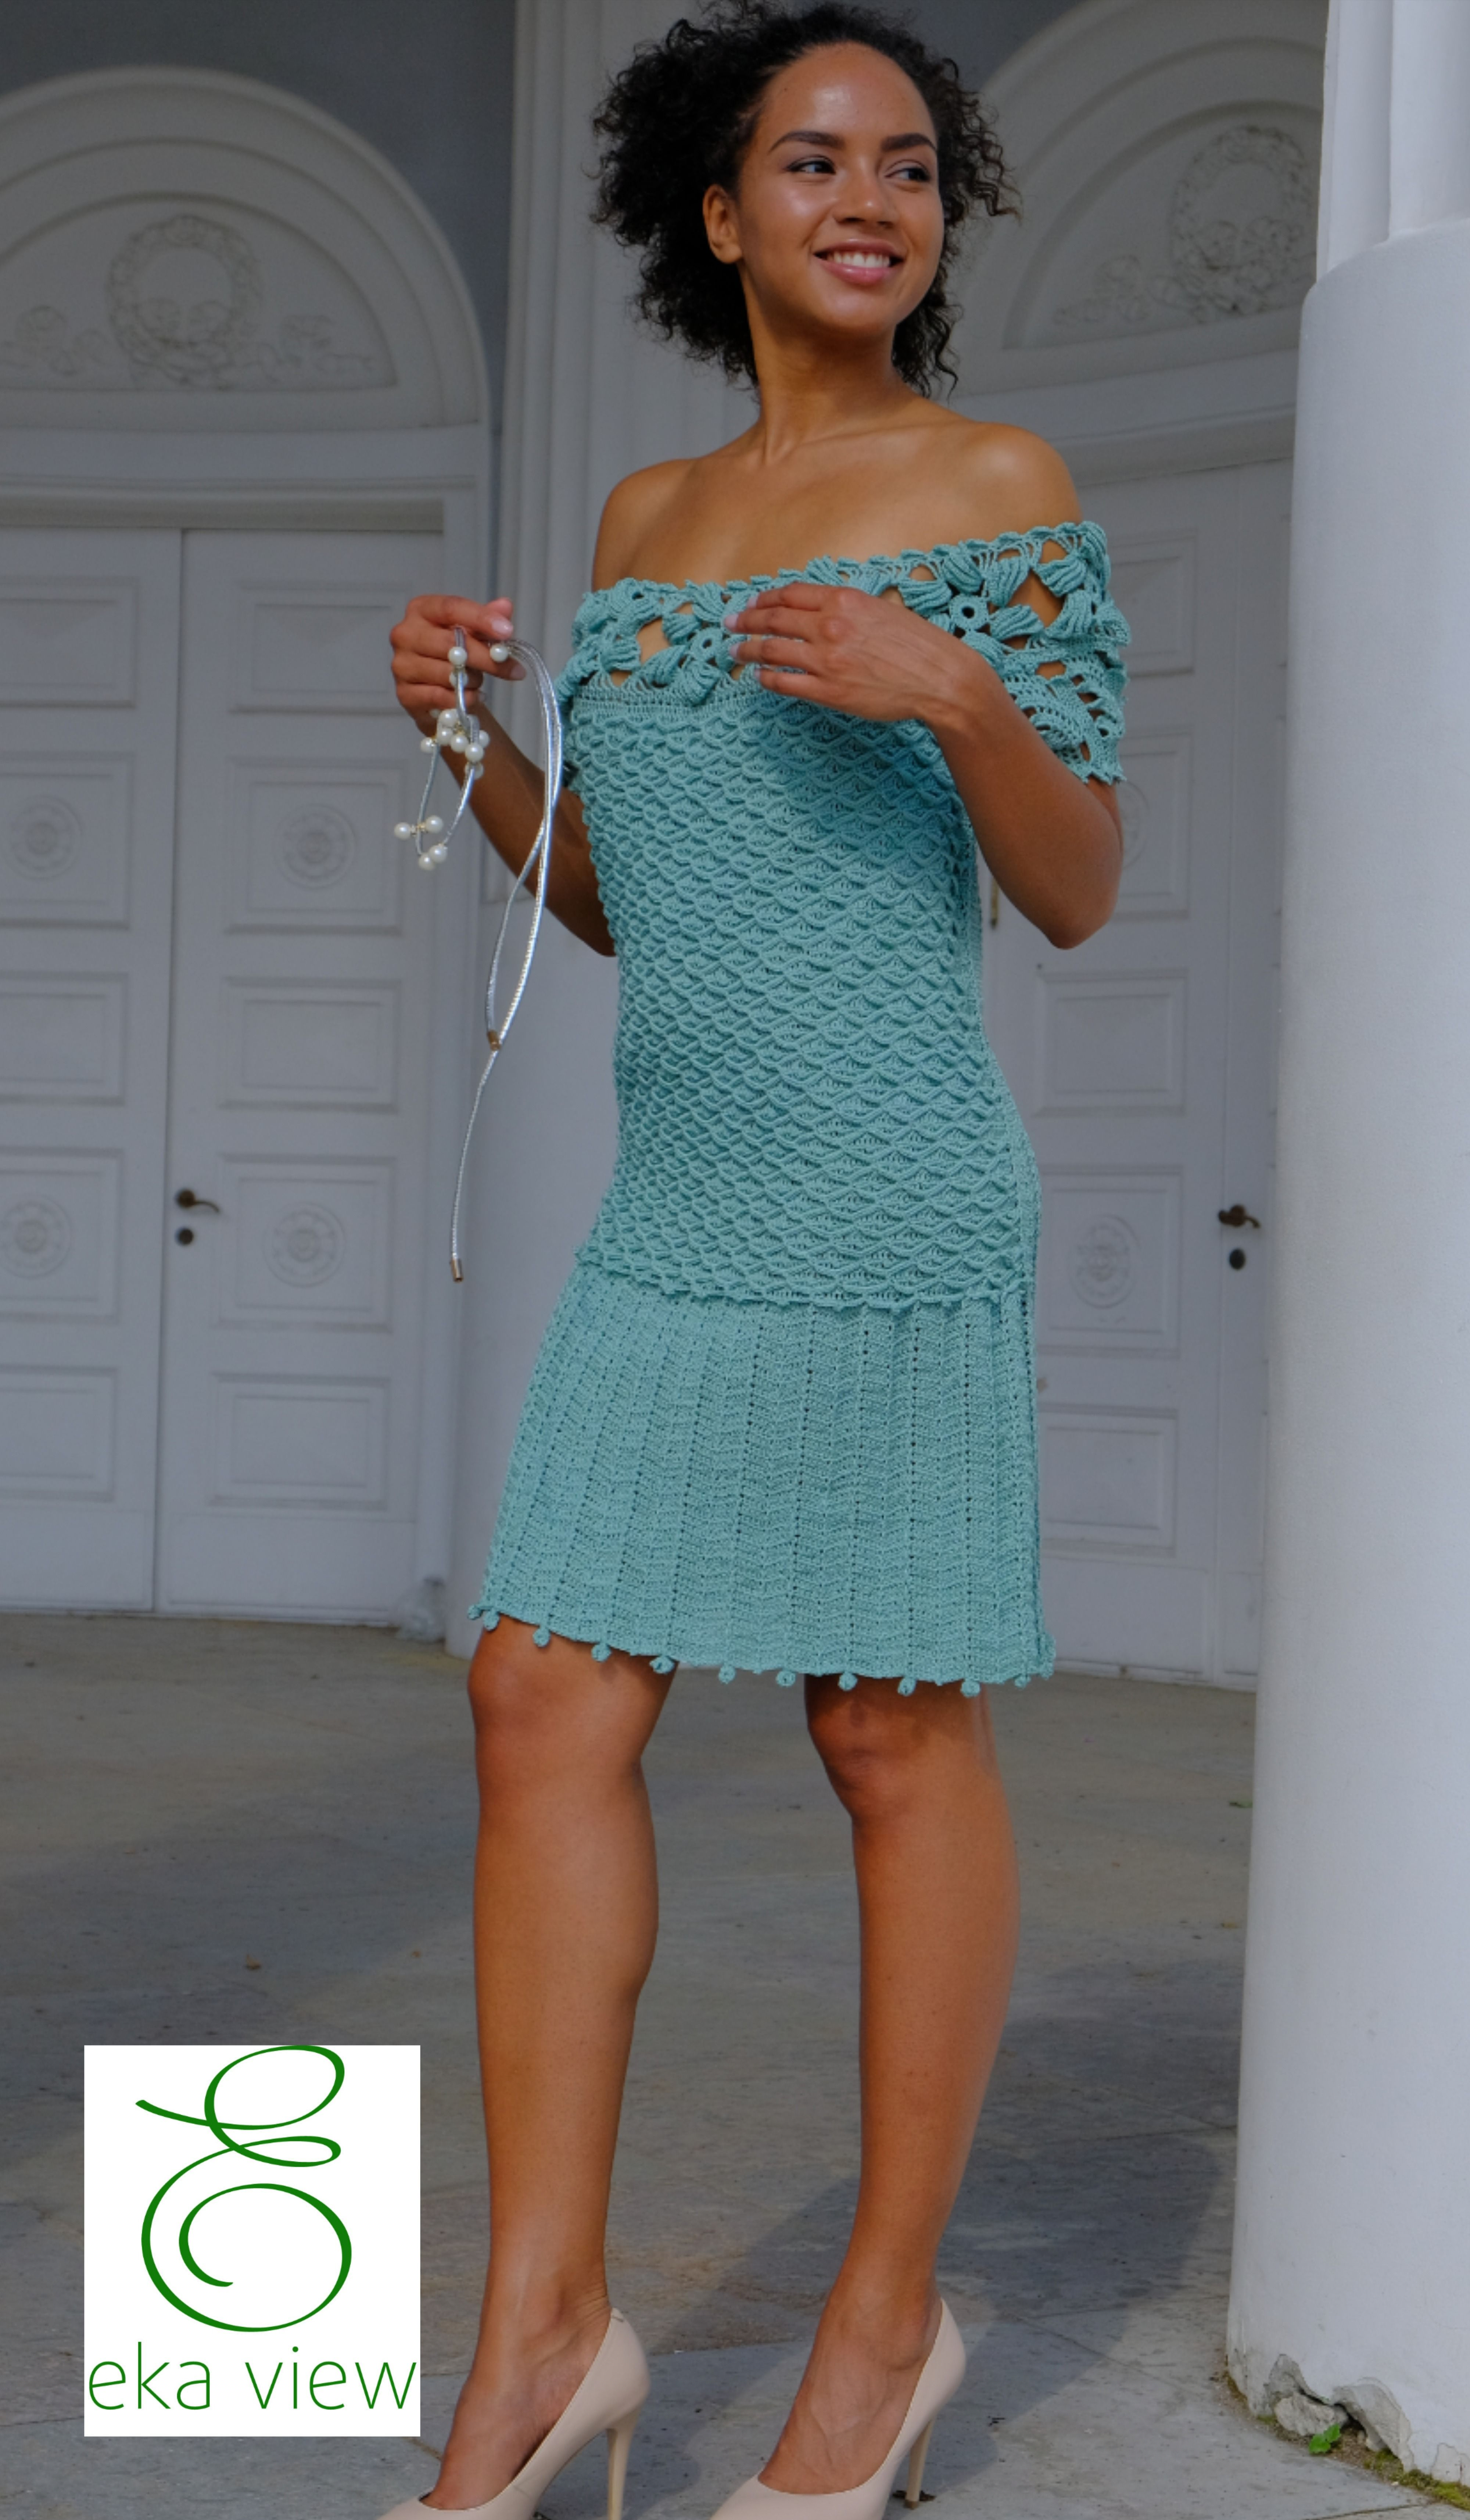 Straight Fitted Lace Dress Off Shoulders In Pale Mint Etsy In 2020 Concert Dresses Nice Dresses Hand Knitted Dress